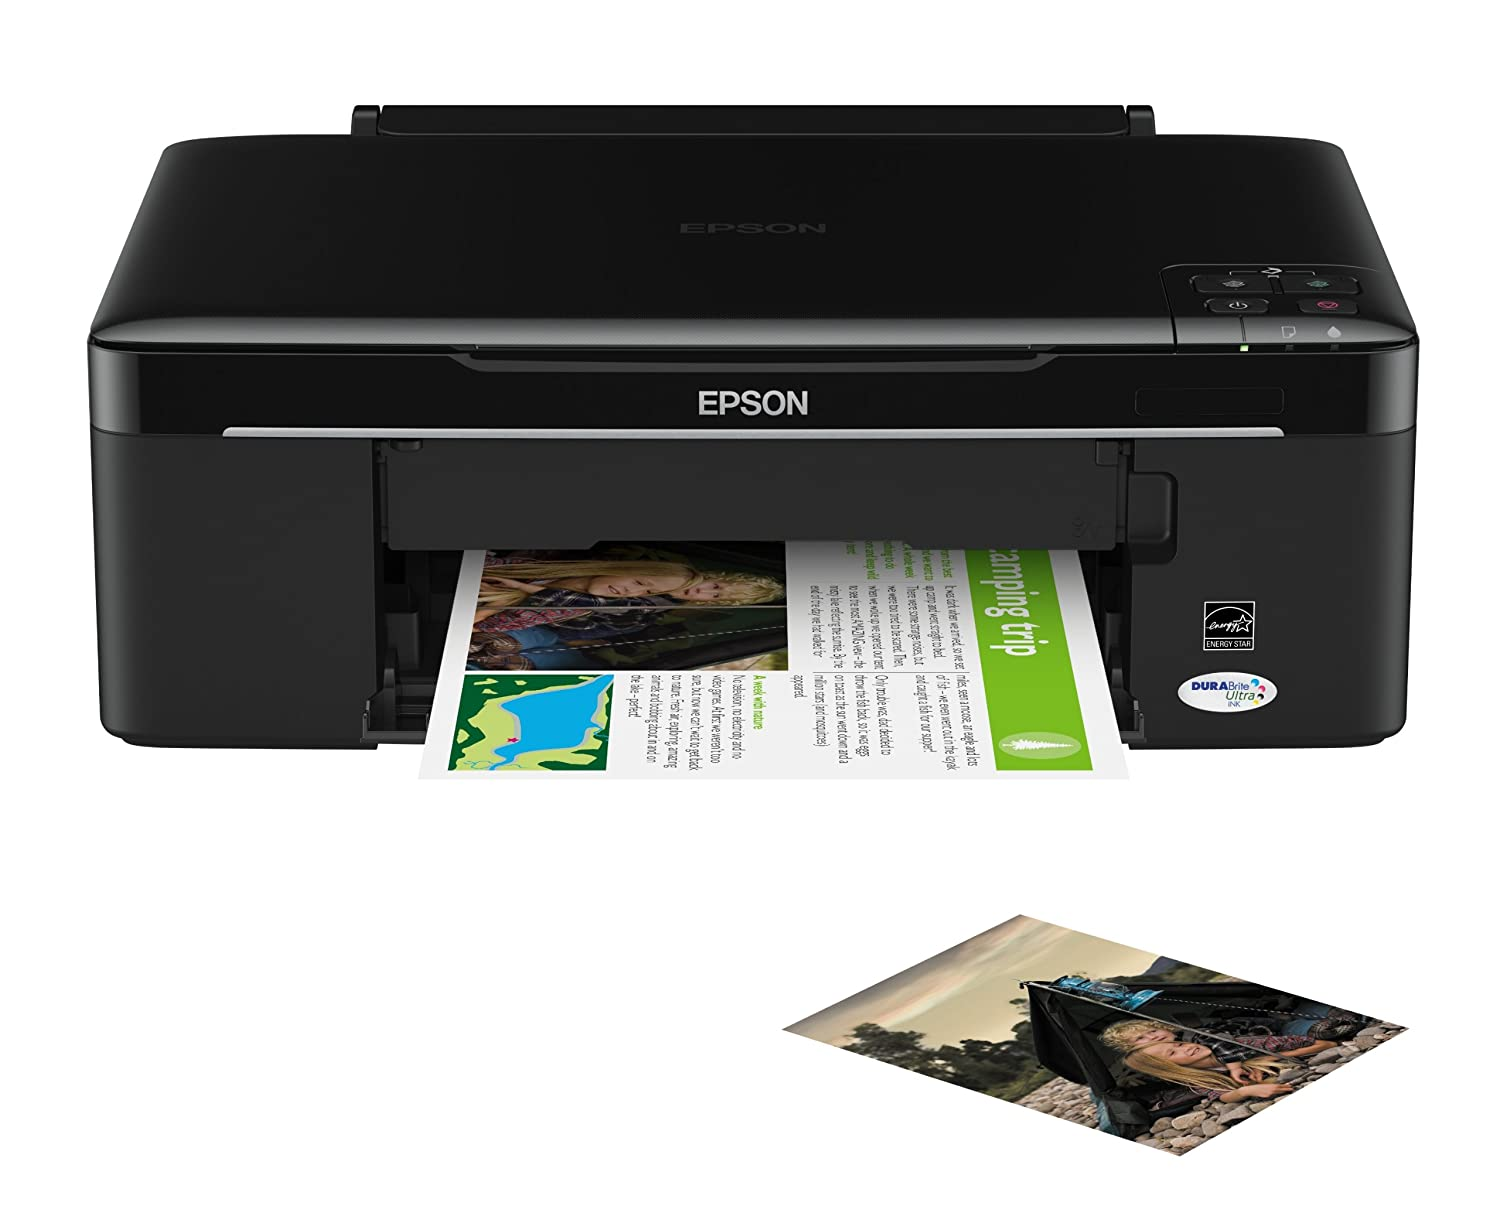 epson stylus sx125 all in one print scan copy printer amazon co rh amazon  co uk epson stylus sx125 user manual Epson Stylus Printers